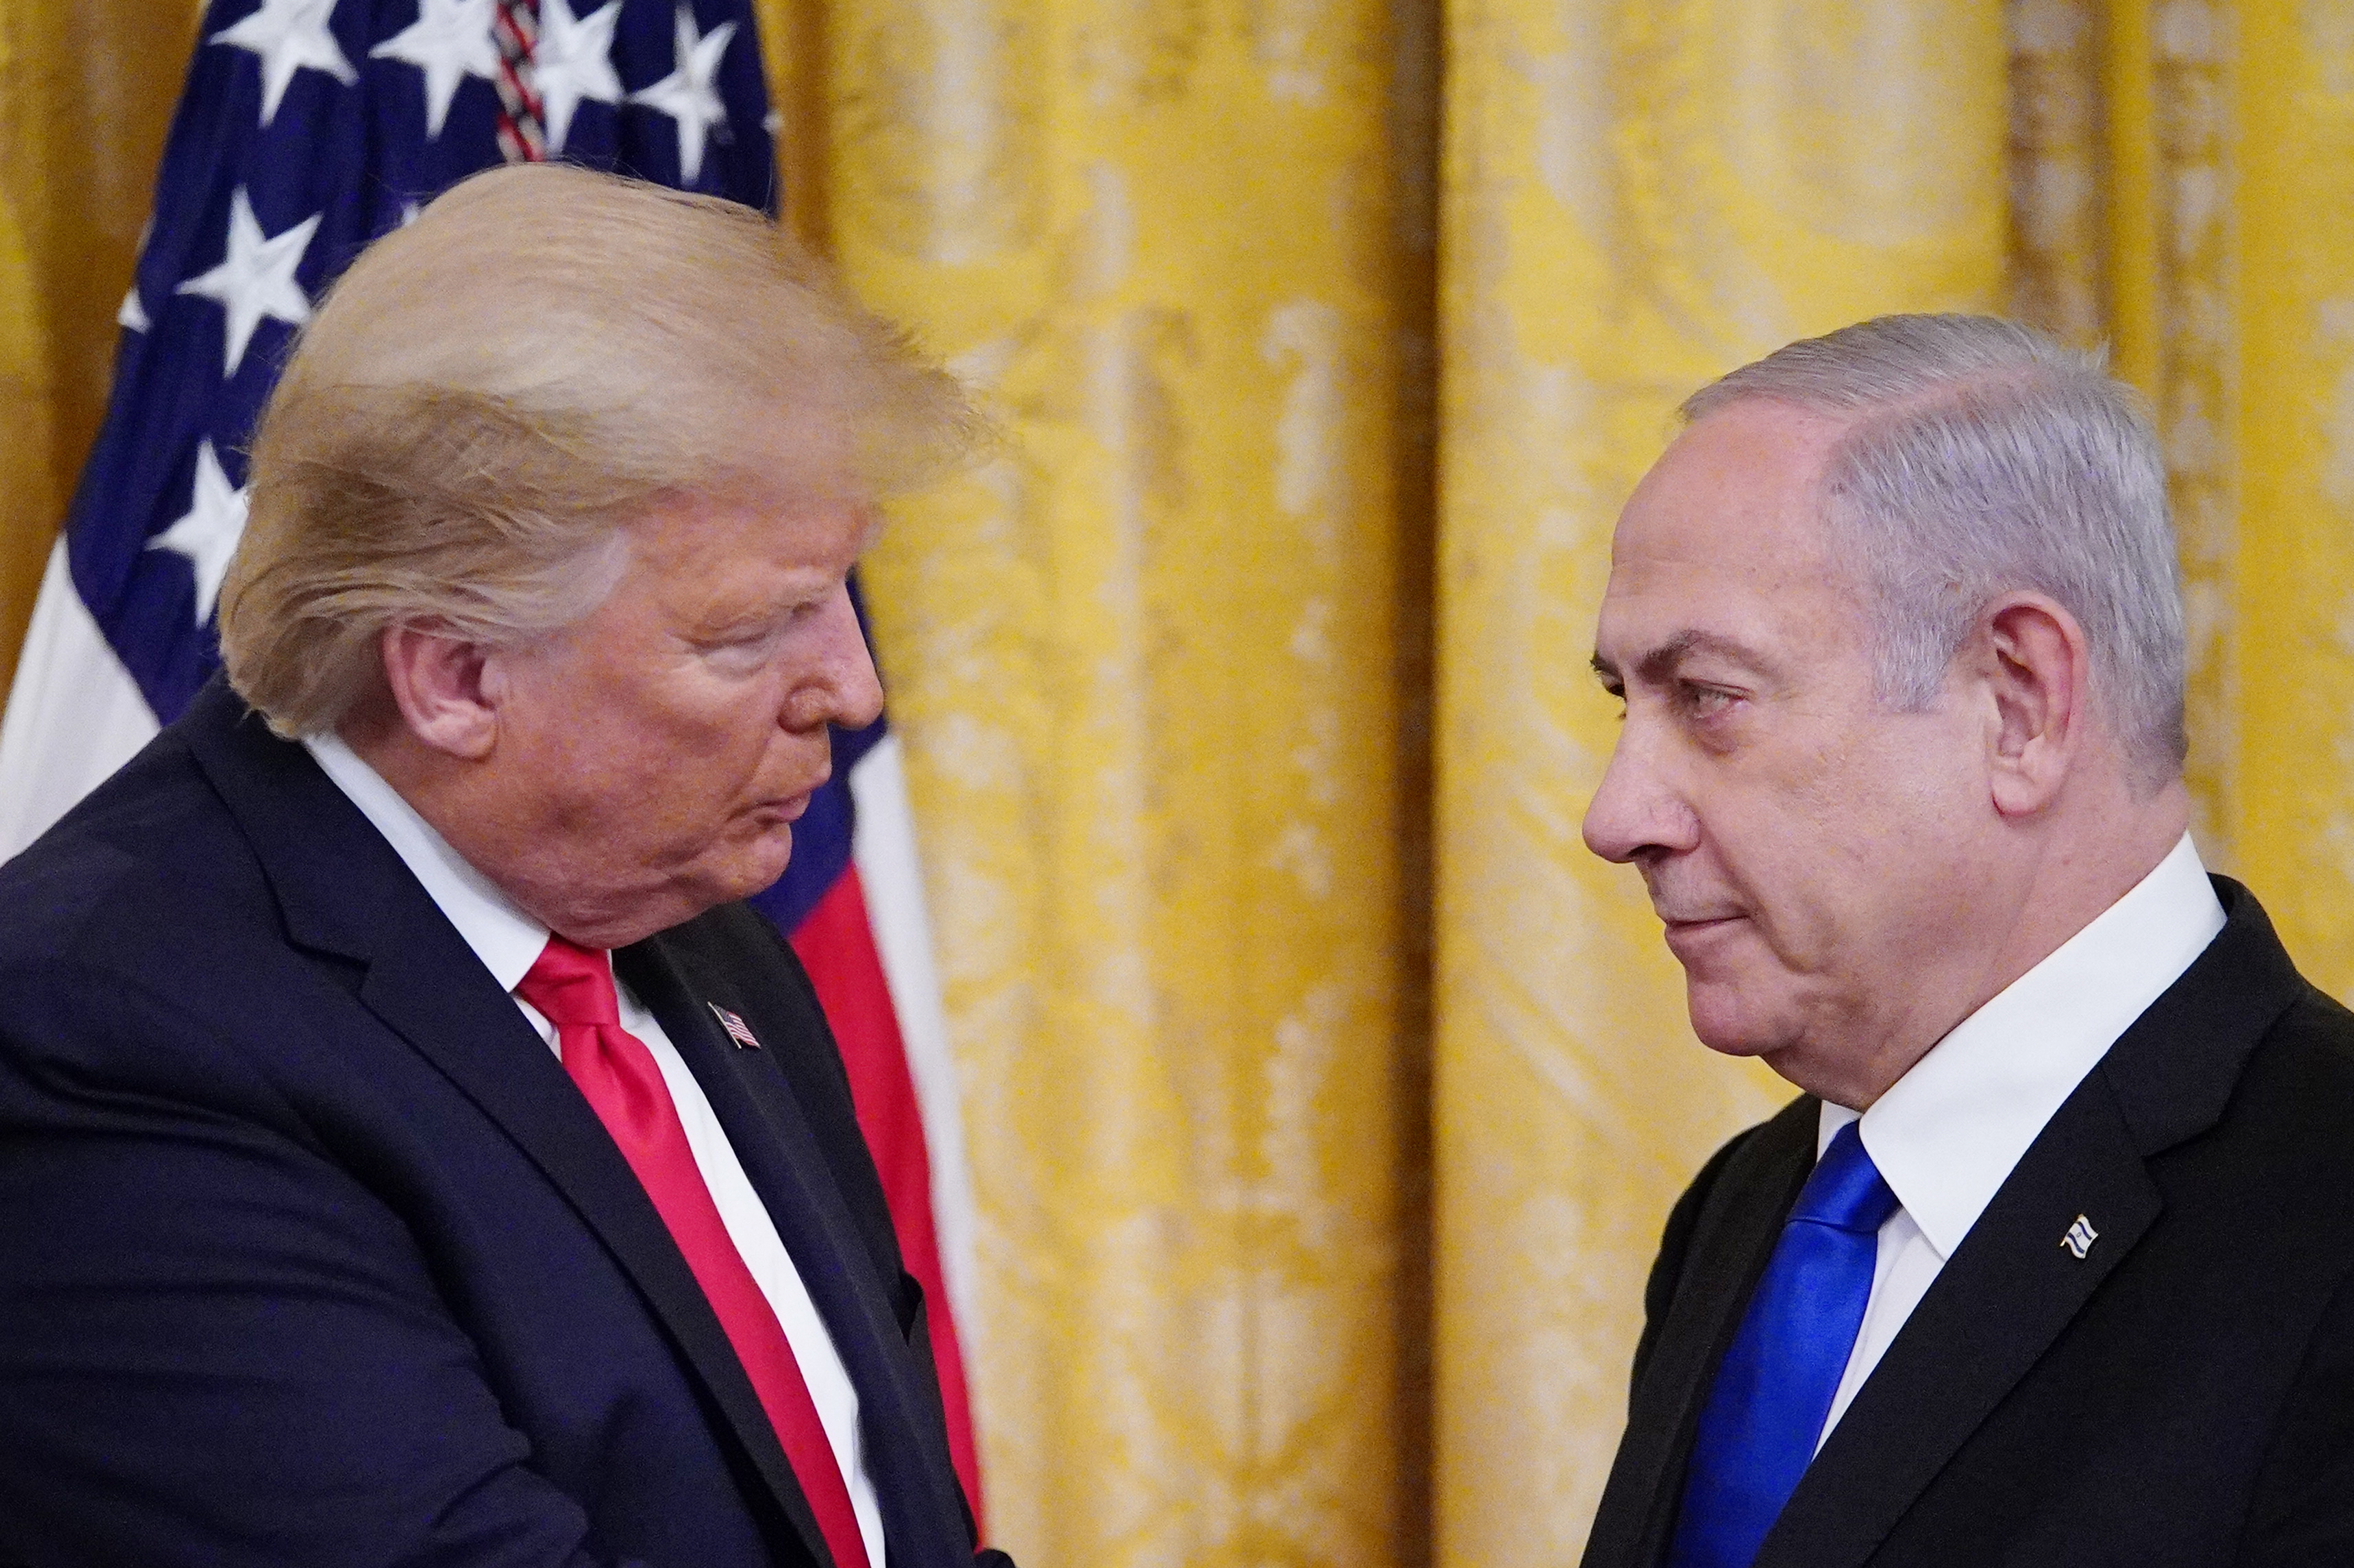 US President Donald Trump and Israel's Prime Minister Benjamin Netanyahu in the East Room of the White House in Washington, DC on 28 January (AFP)